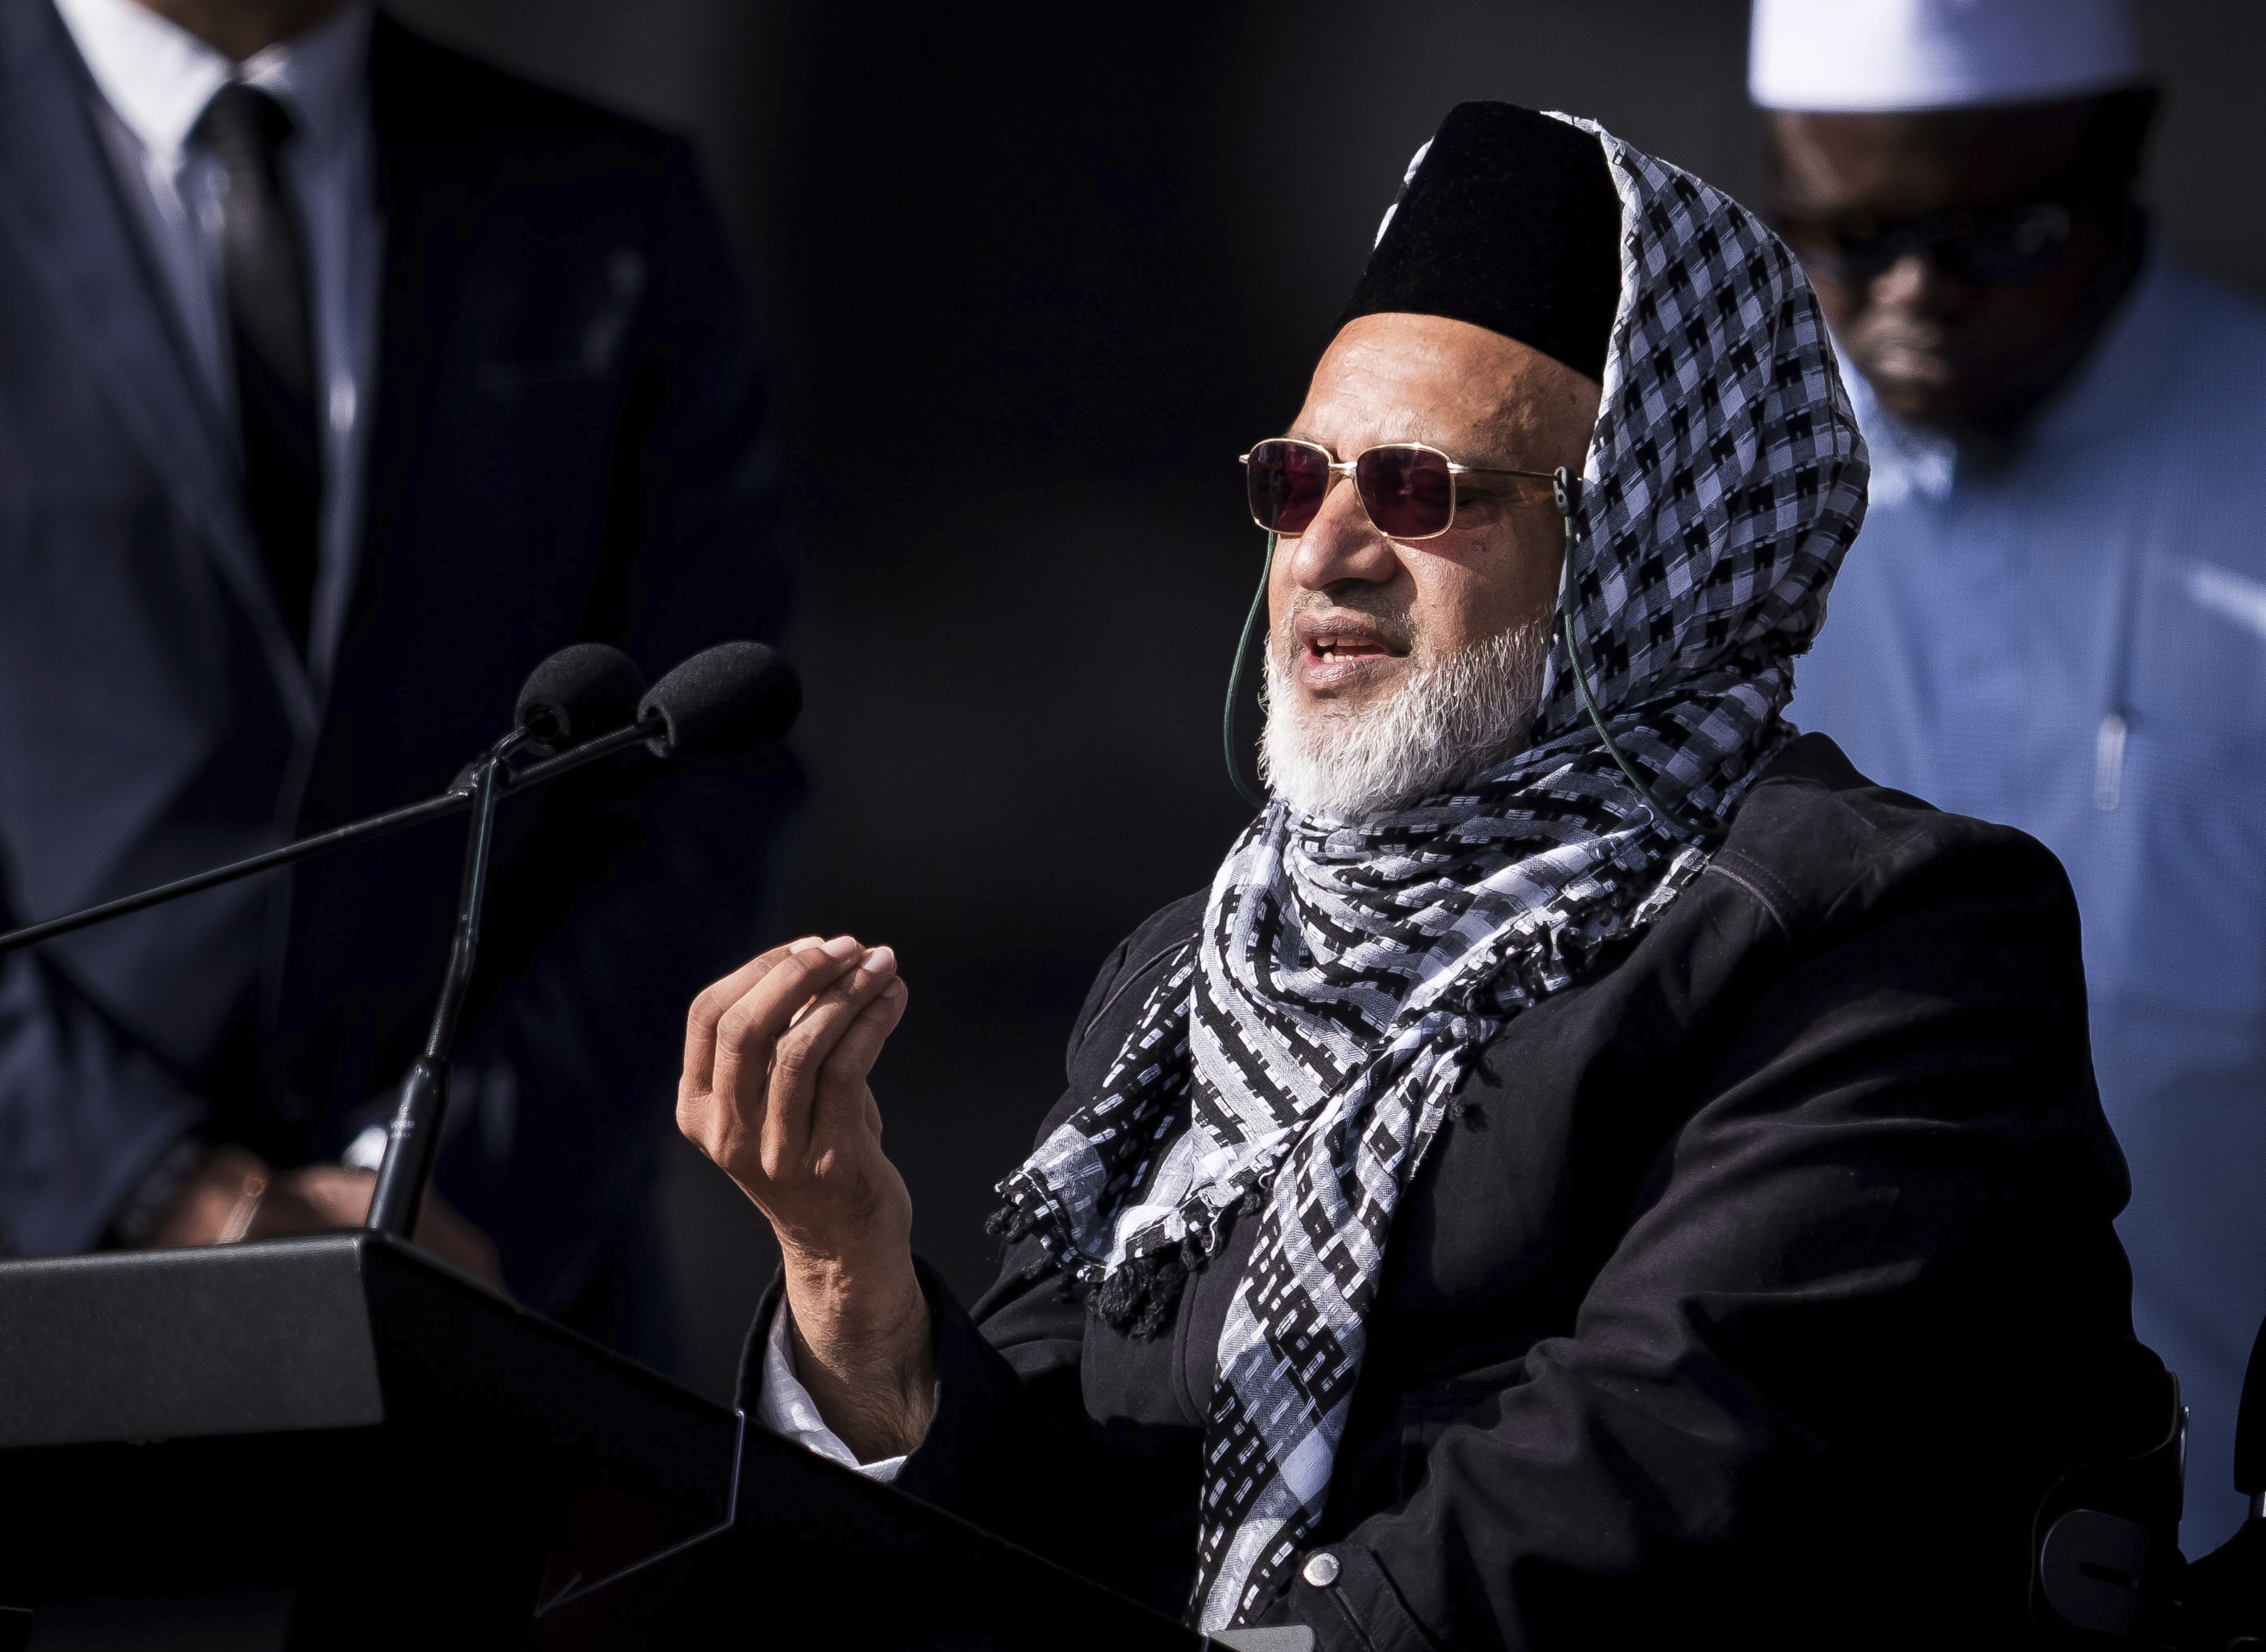 In this photo supplied by the New Zealand government, Mosque shooting survivor Farid Ahmed addresses the national remembrance service in Hagley Park for the victims of the March 15 mosques terrorist attack in Christchurch, New Zealand, Friday, March 29, 2019. (Mark Tantrum/New Zealand Government via AP)